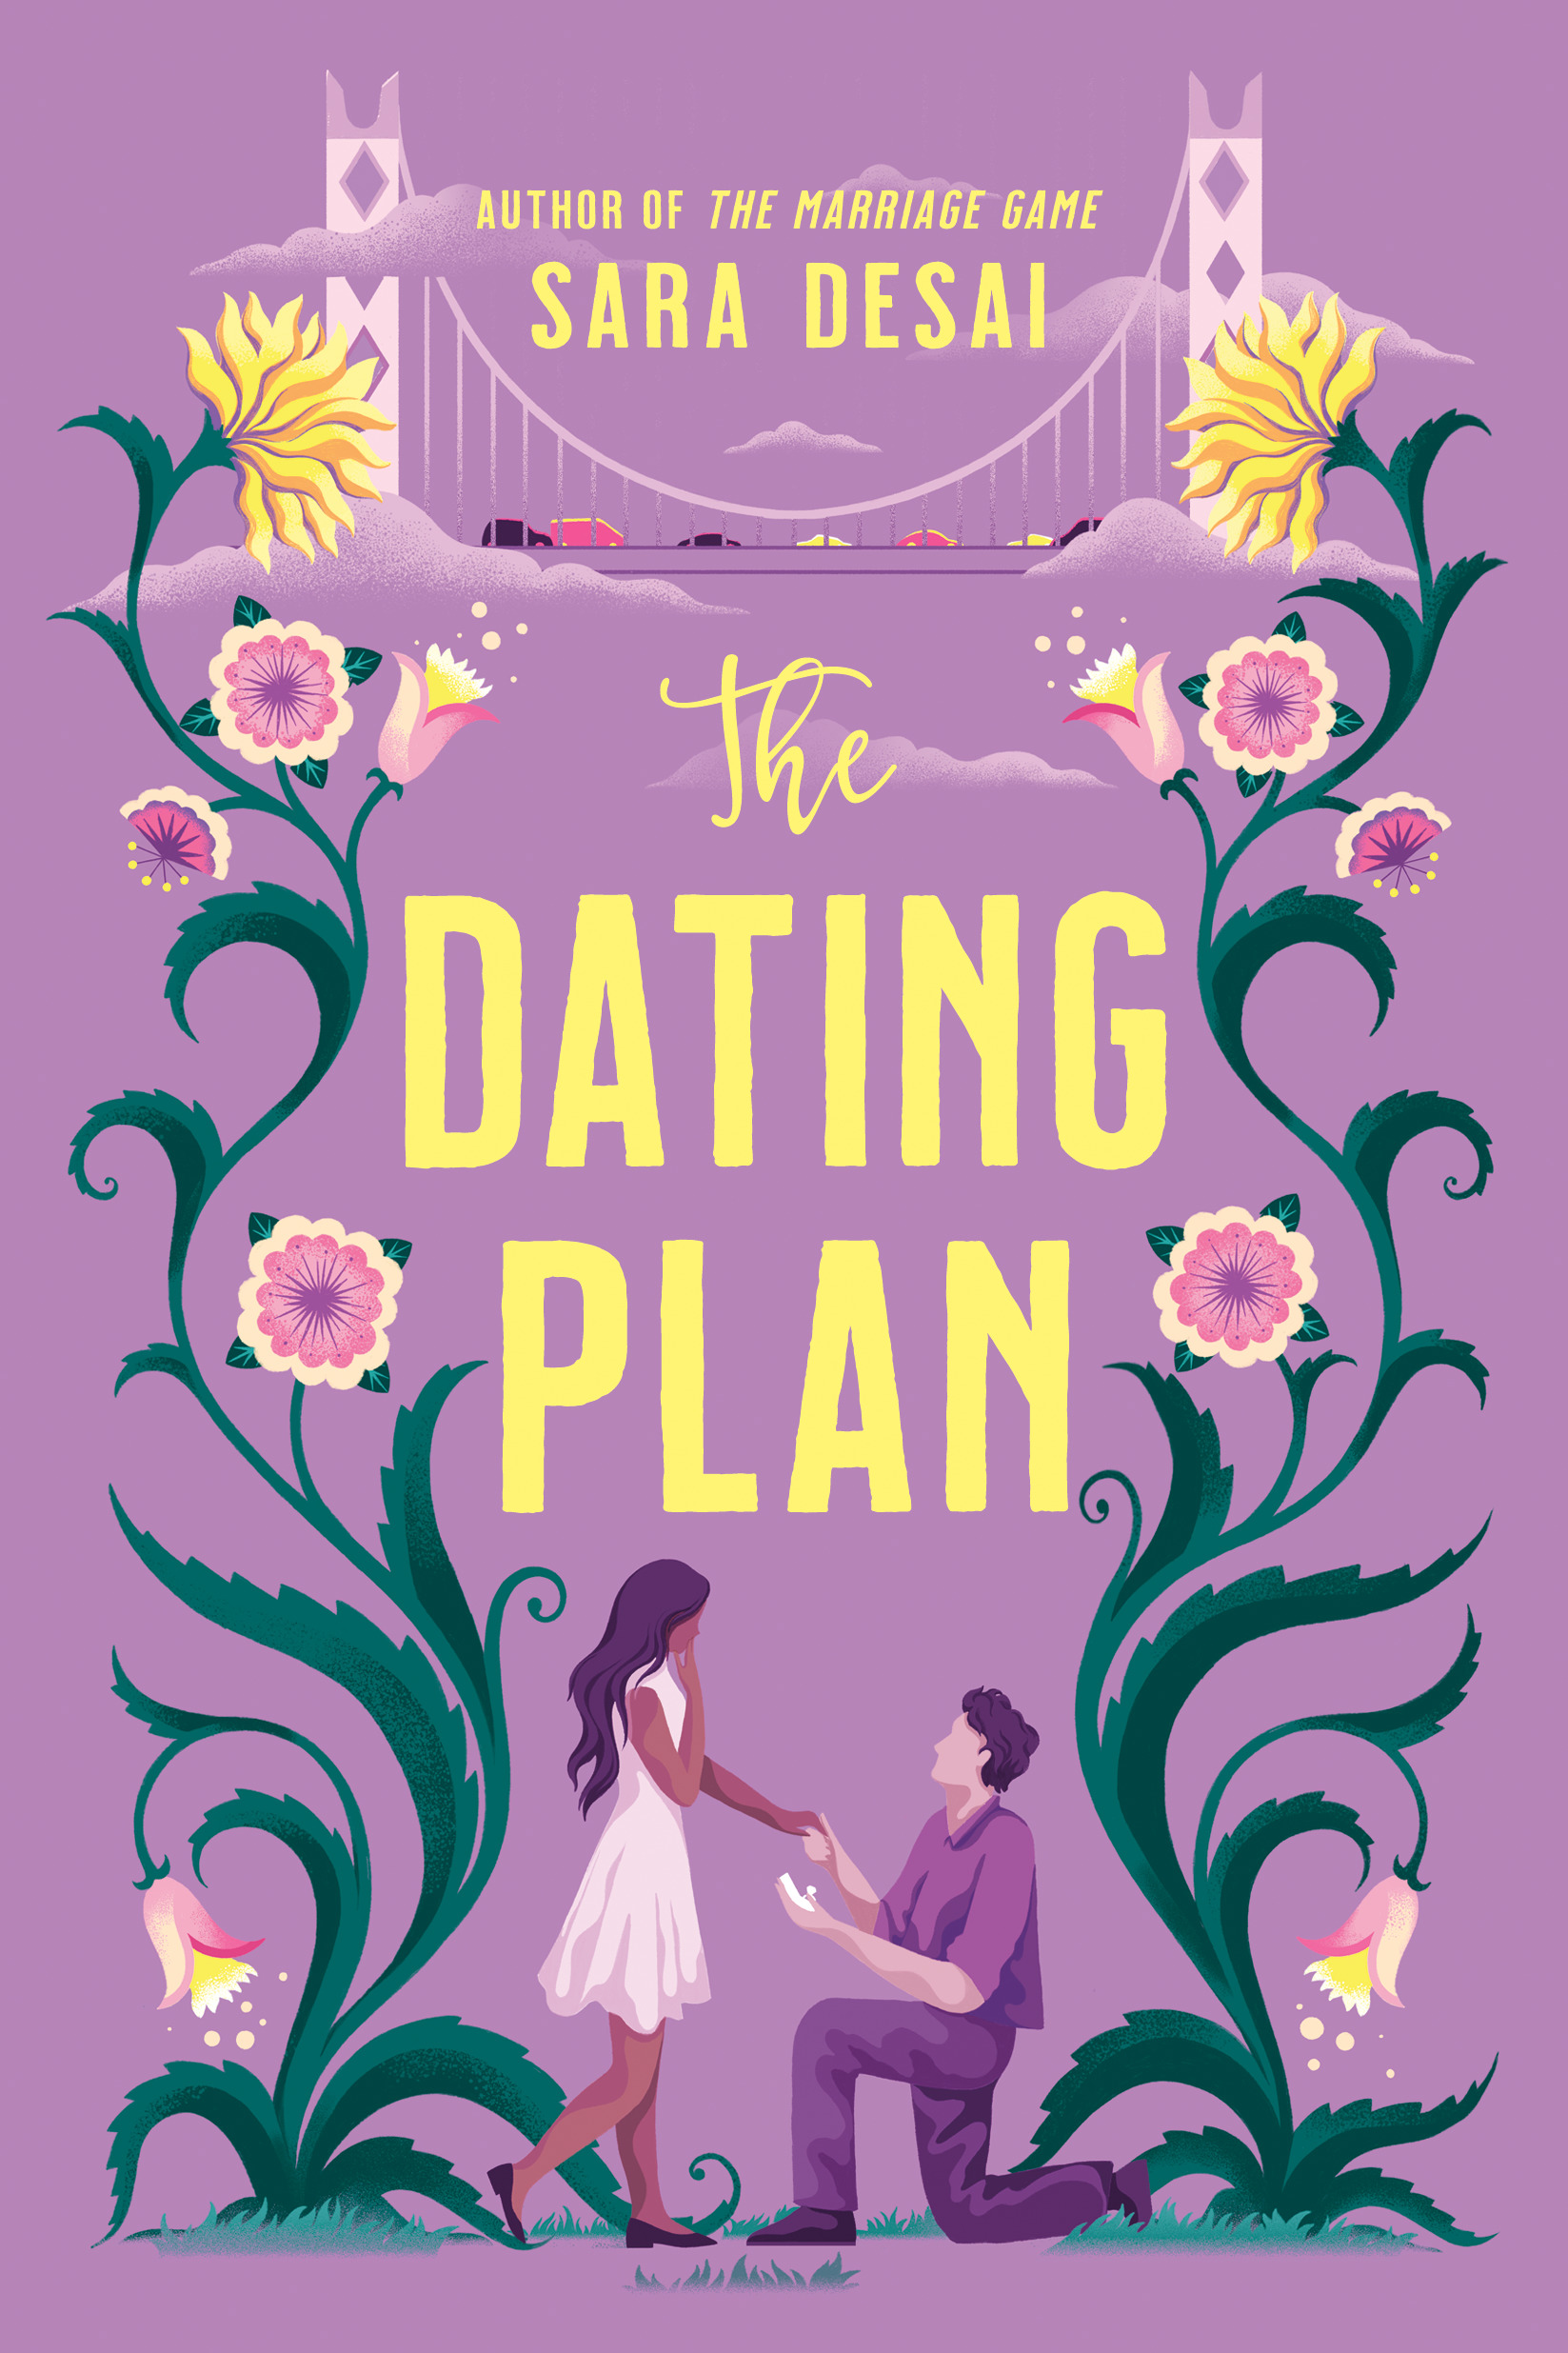 The Dating Plan by Sara Desai